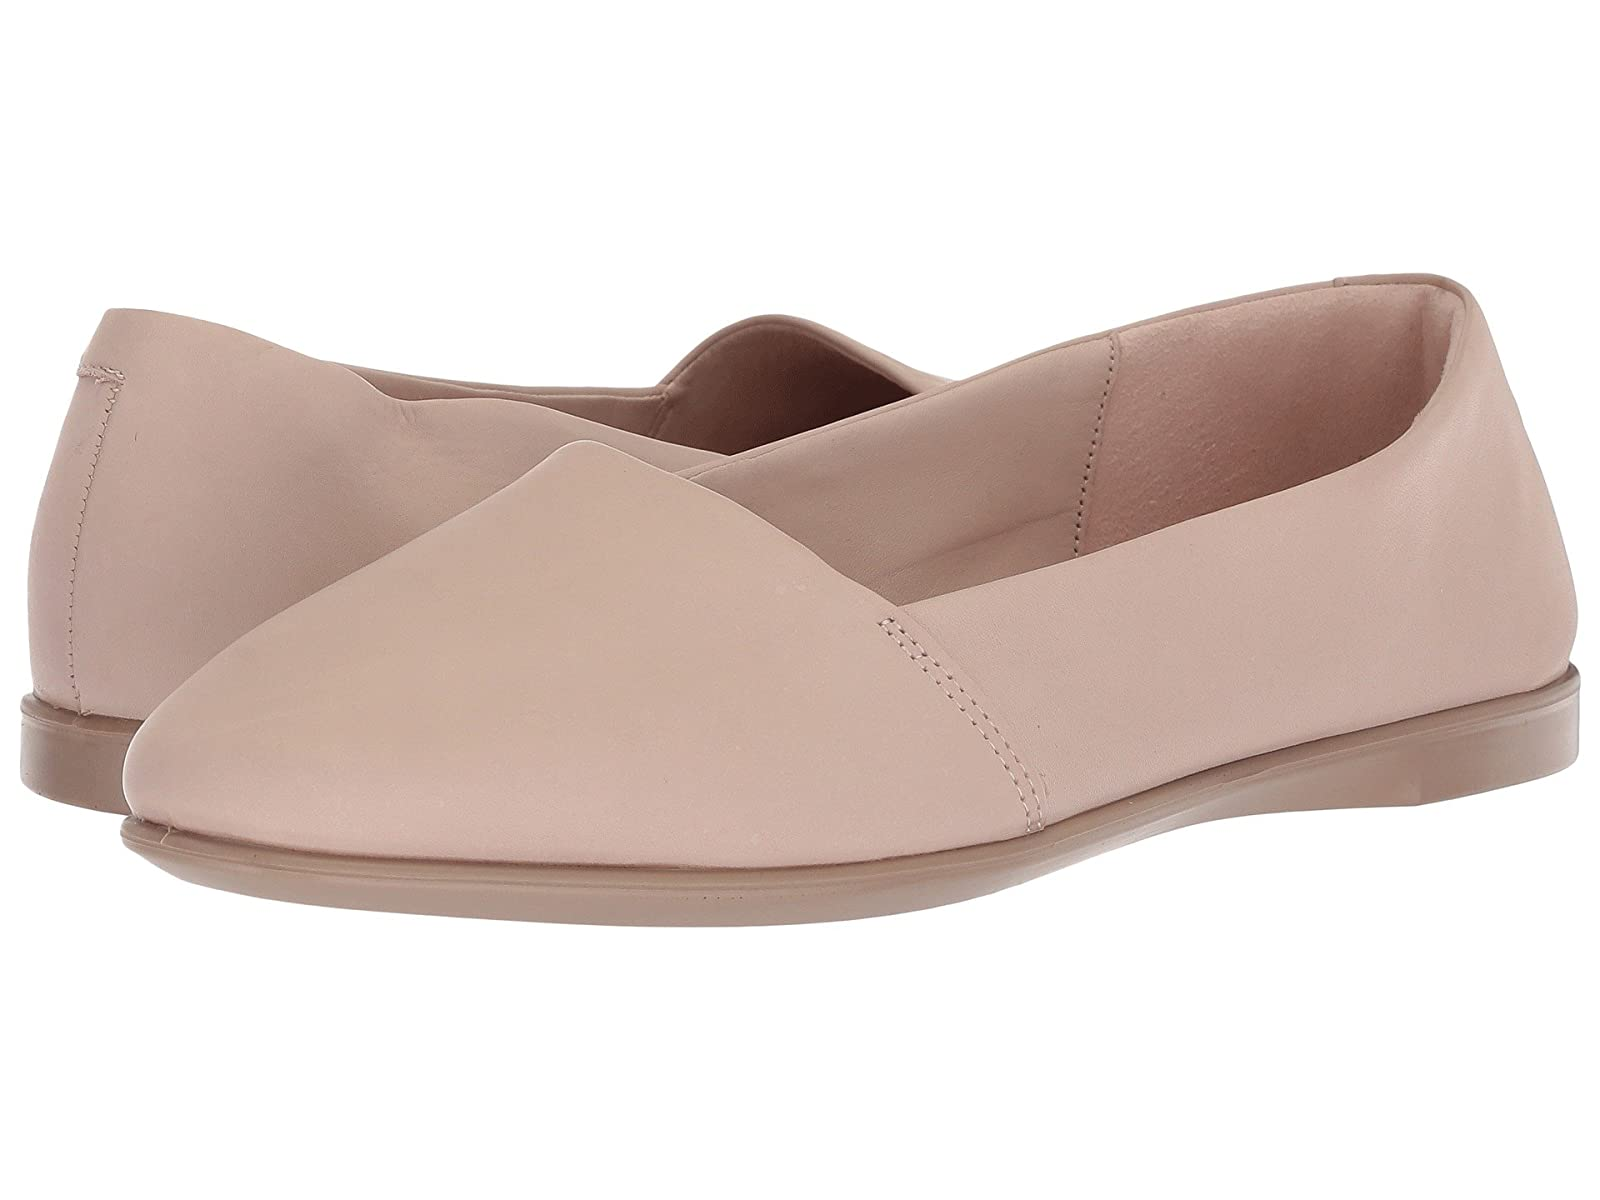 ECCO Incise Enchant Slip-OnCheap and distinctive eye-catching shoes